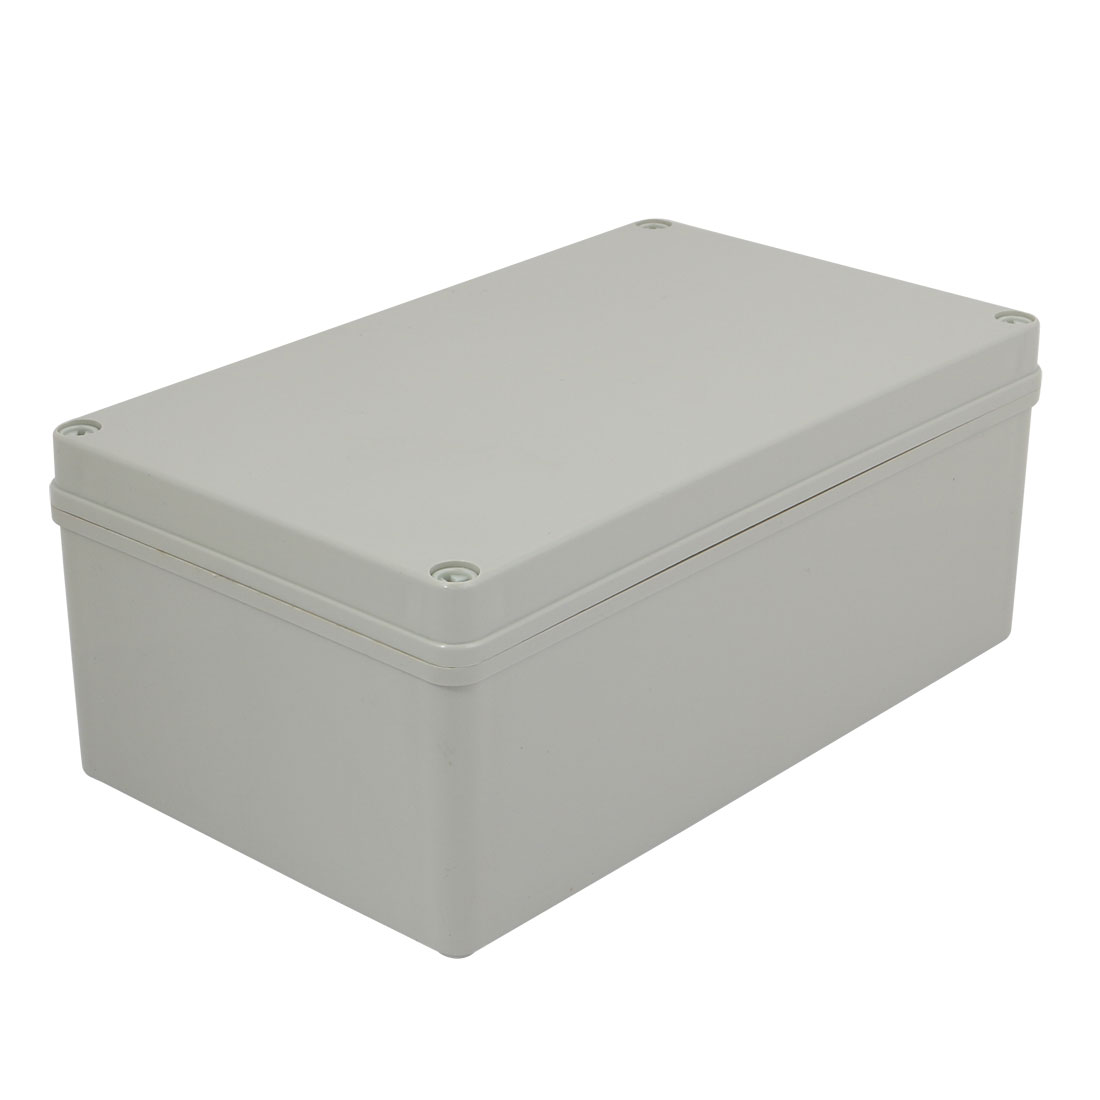 250mmx150mmx100mm Electronic ABS Plastic DIY Junction Box Enclosure Case Gray